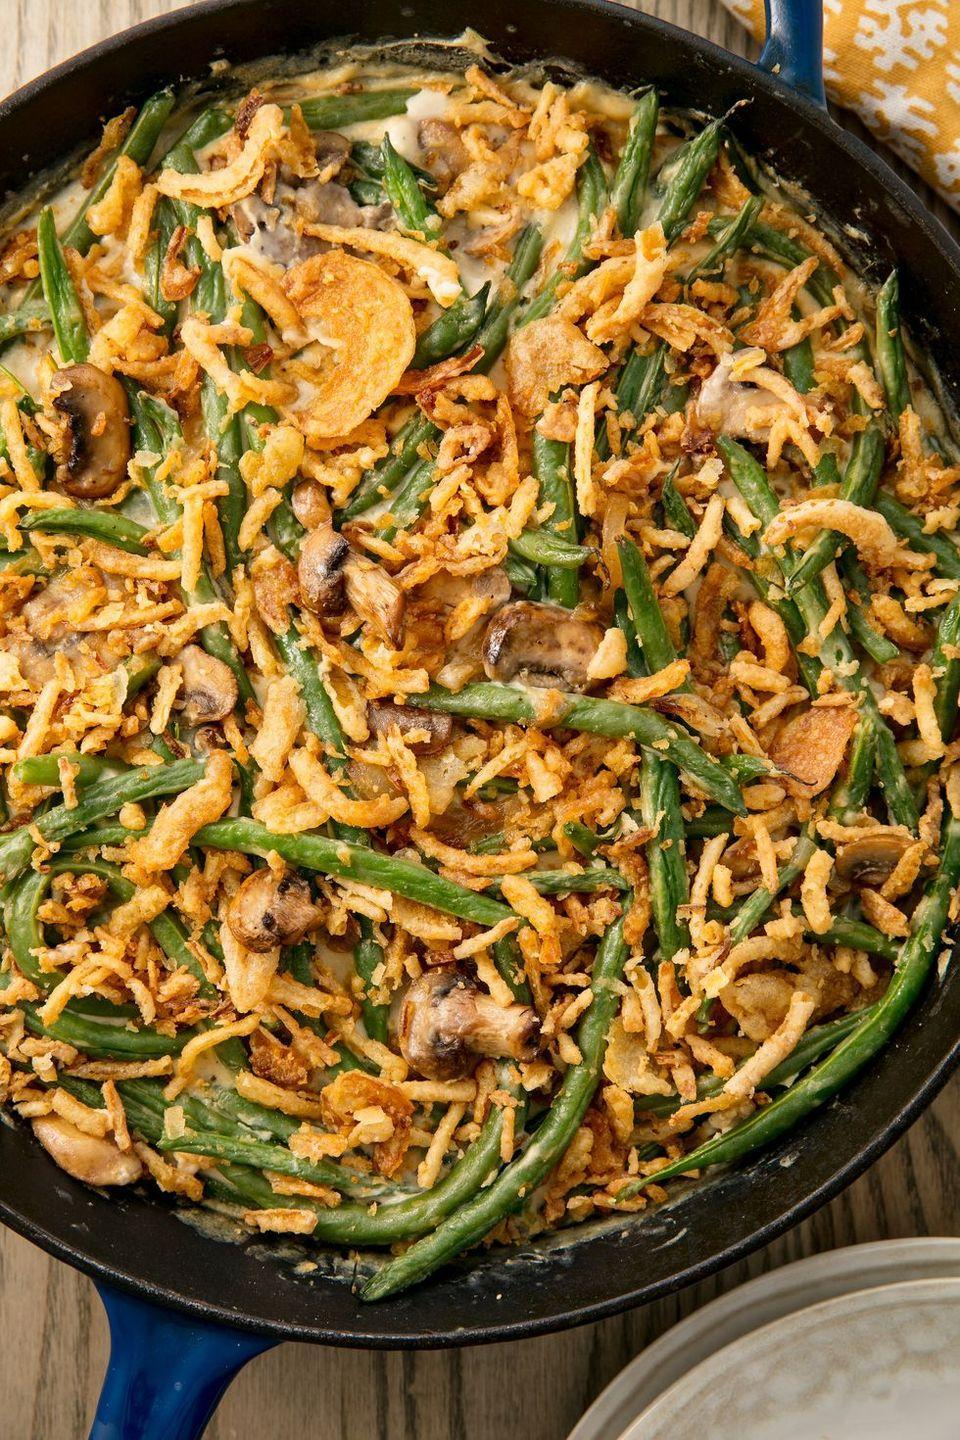 """<p>Green bean casserole screams Thanksgiving. There's rarely a time outside of this magical holiday that the dish is made, so it's got to be the best come Thanksgiving Day. </p><p><strong><em>Get the recipe at <a href=""""https://www.delish.com/holiday-recipes/thanksgiving/a55340/easy-homemade-classic-green-bean-casserole-recipe/"""" rel=""""nofollow noopener"""" target=""""_blank"""" data-ylk=""""slk:Delish"""" class=""""link rapid-noclick-resp"""">Delish</a>. </em></strong><br></p>"""